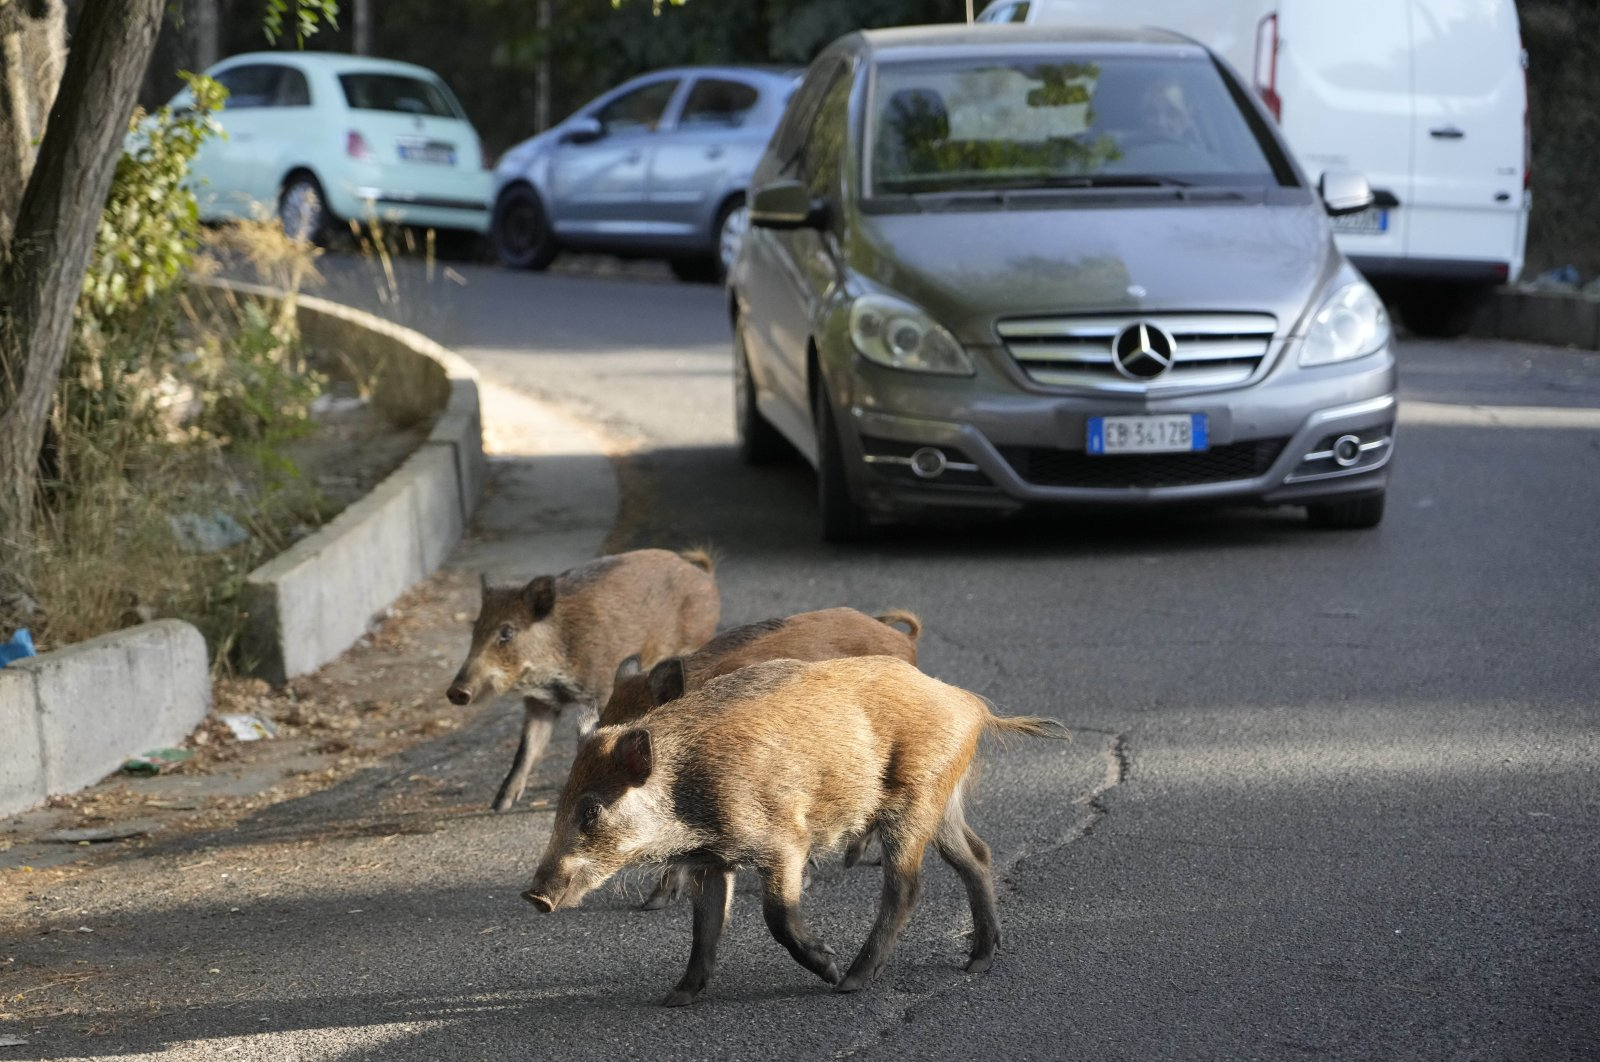 Wild boars cross a street in Rome, Italy, Sept. 24, 2021. (AP Photo)